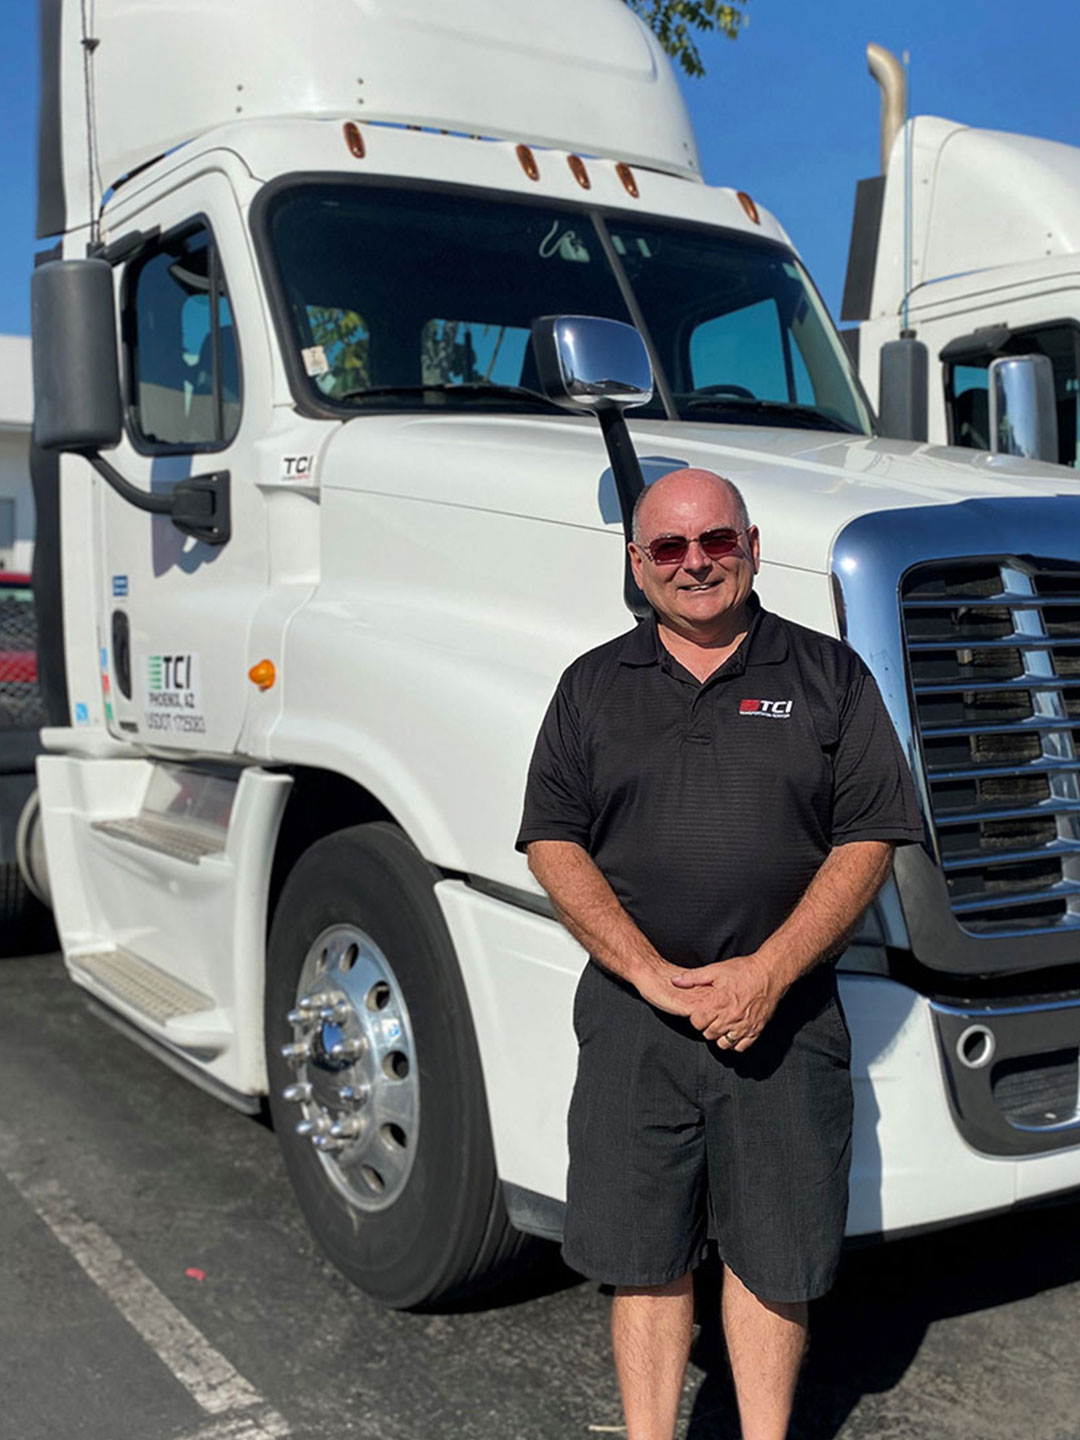 TCI Driver in front of Semi cab